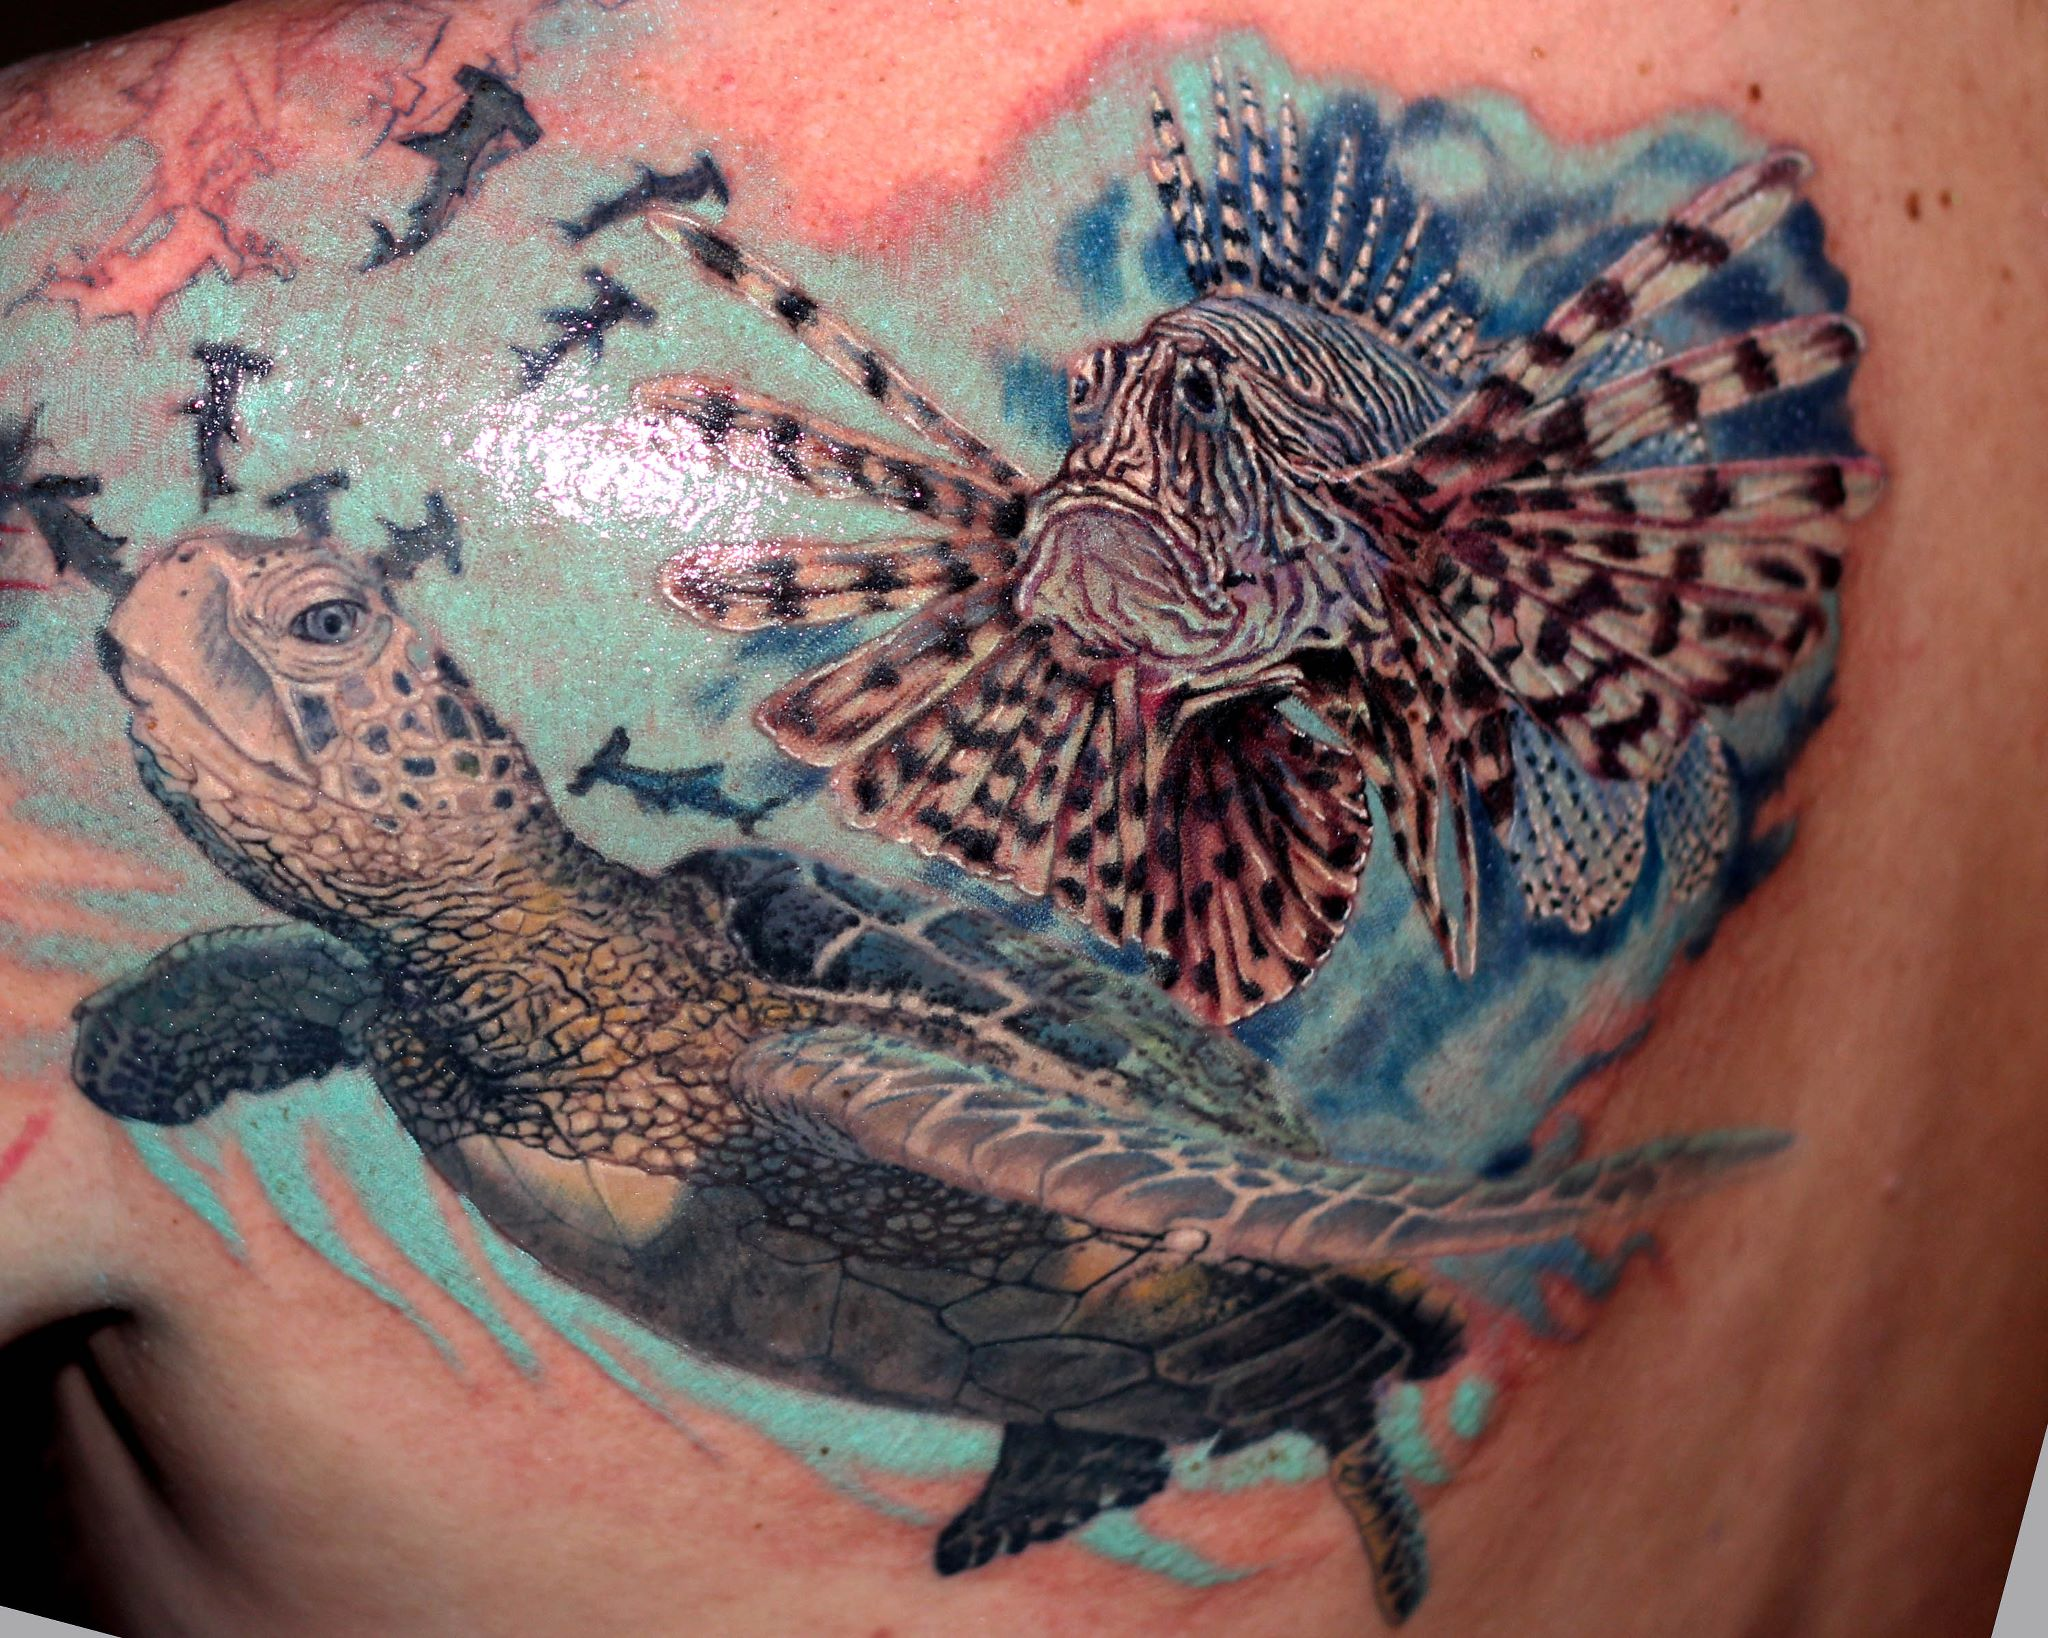 Best Tattoo Shops In Miami Miami Tattoos South Beach Coral Springs Fl Ideas And Designs